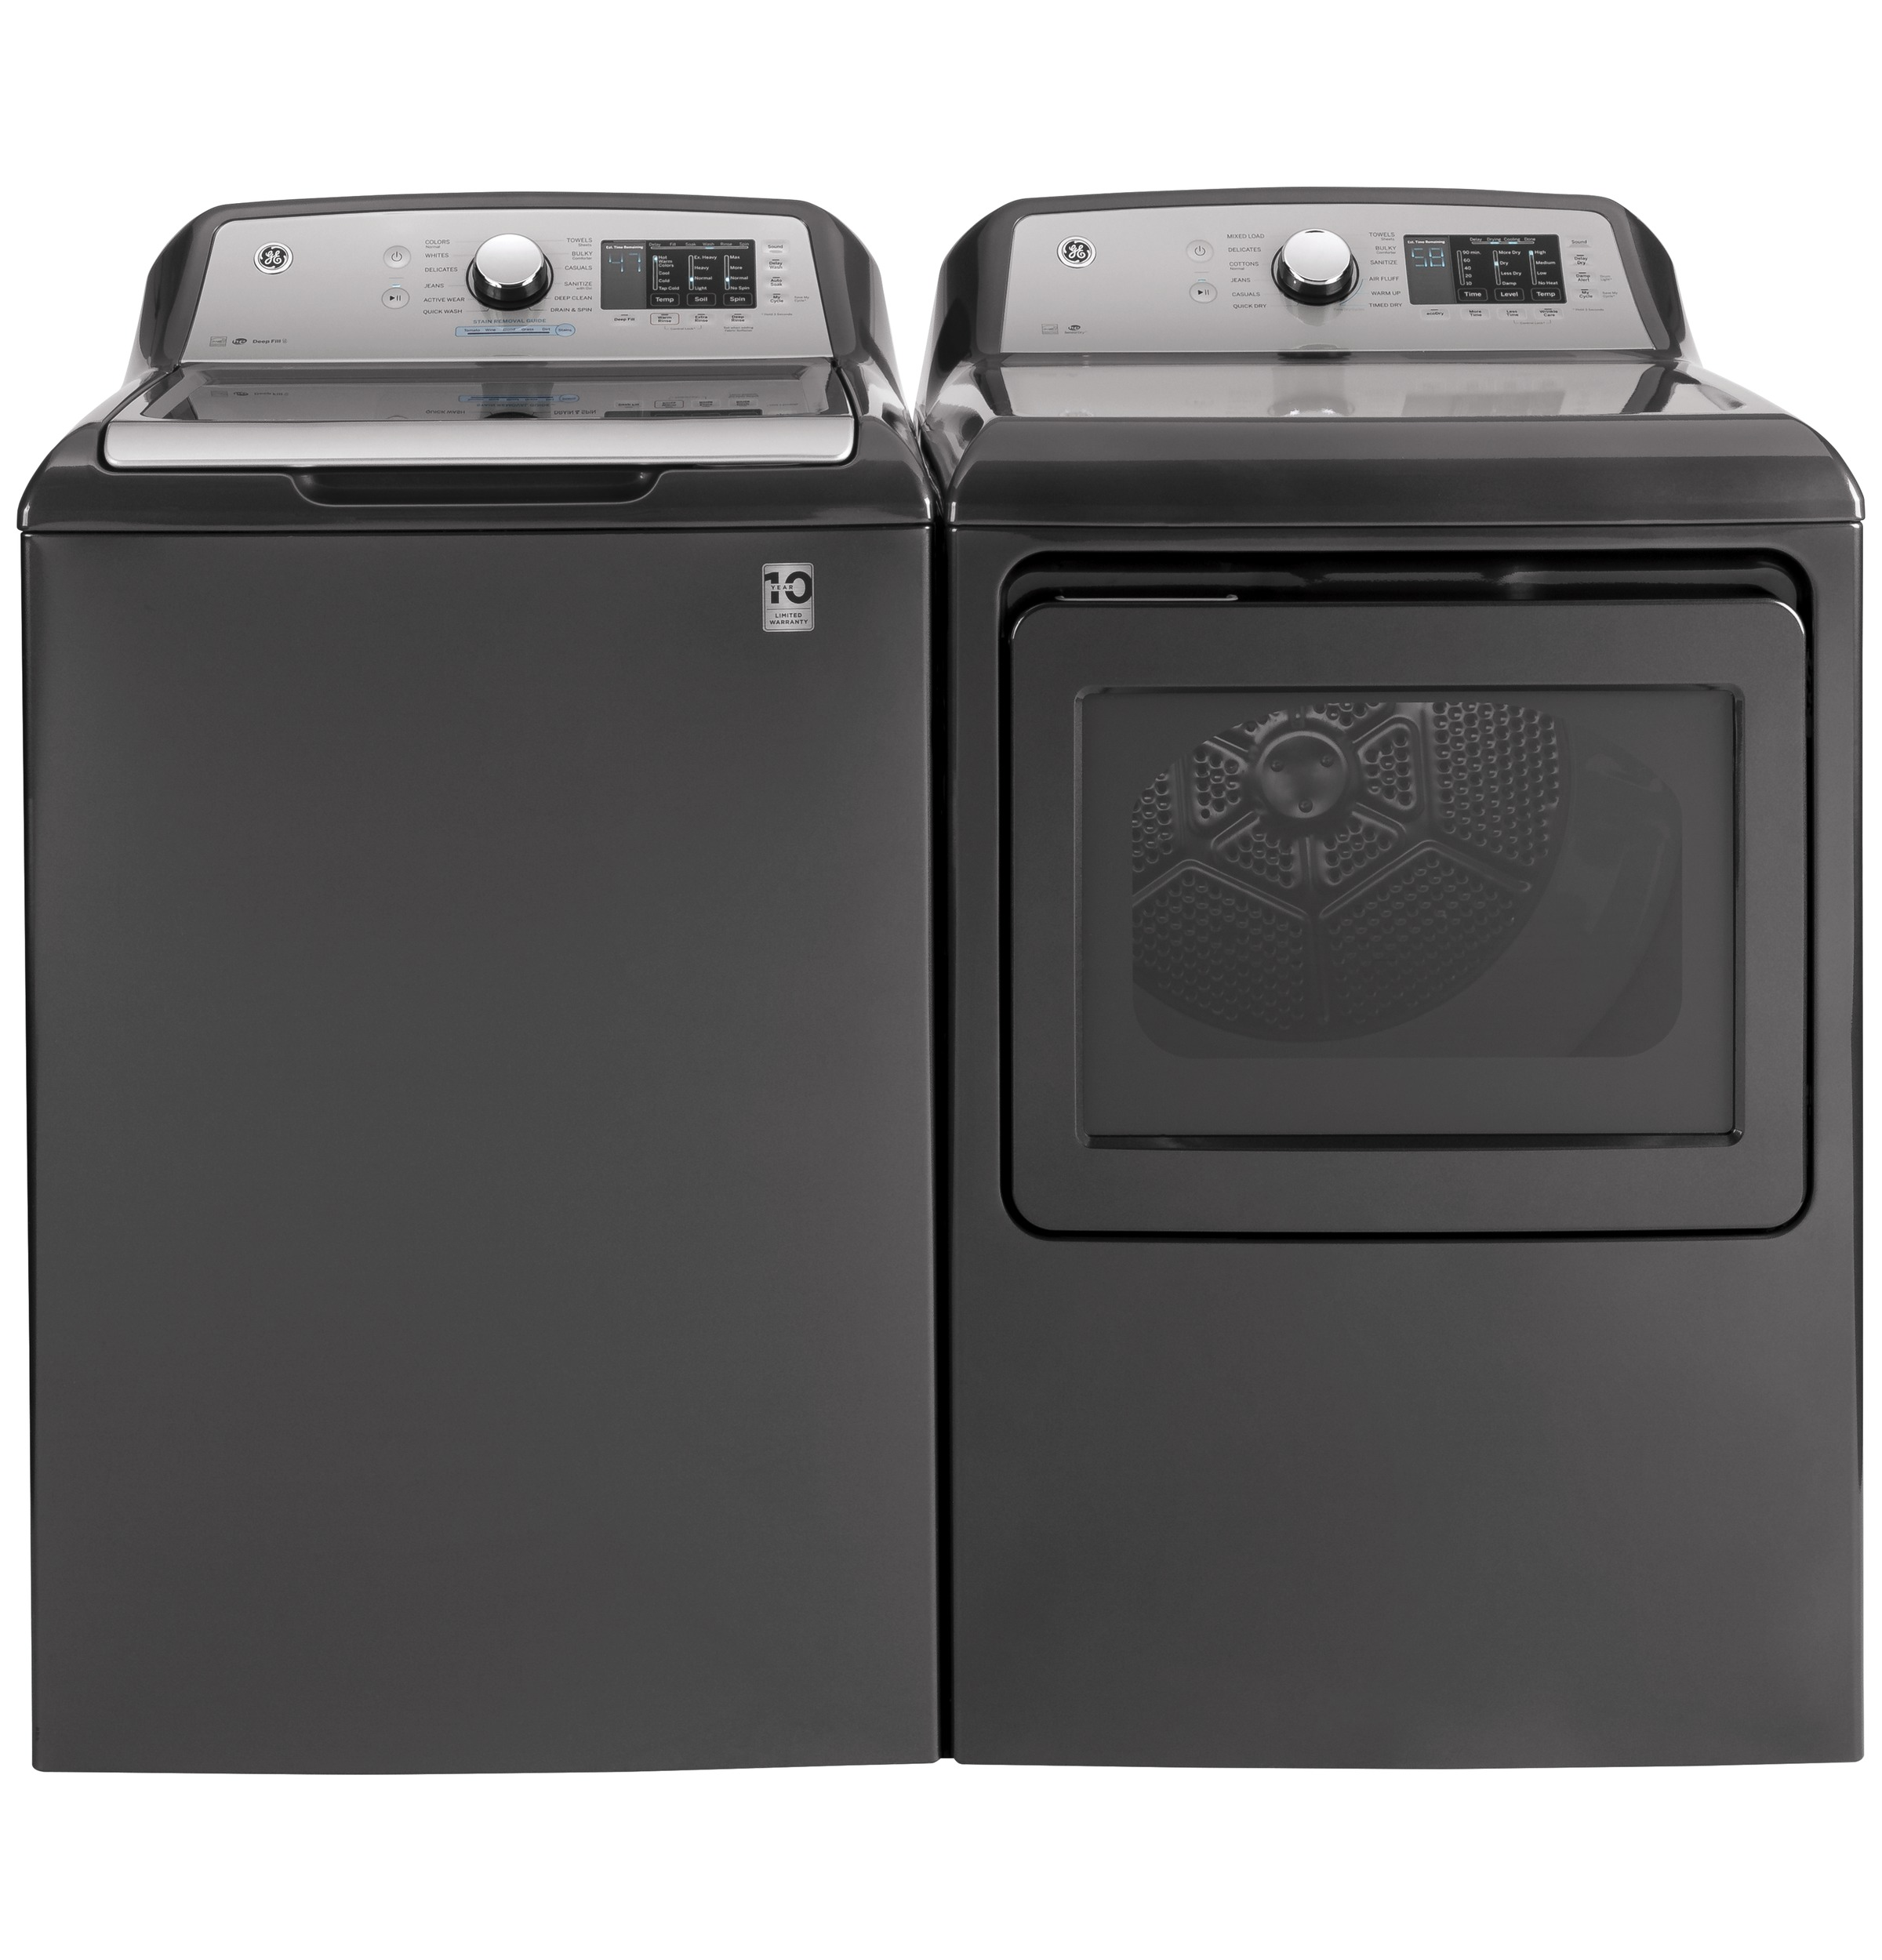 Model: GTW720BPNDG | GE GE® 4.8  cu. ft. Capacity Washer with Tide PODS™ Dispense